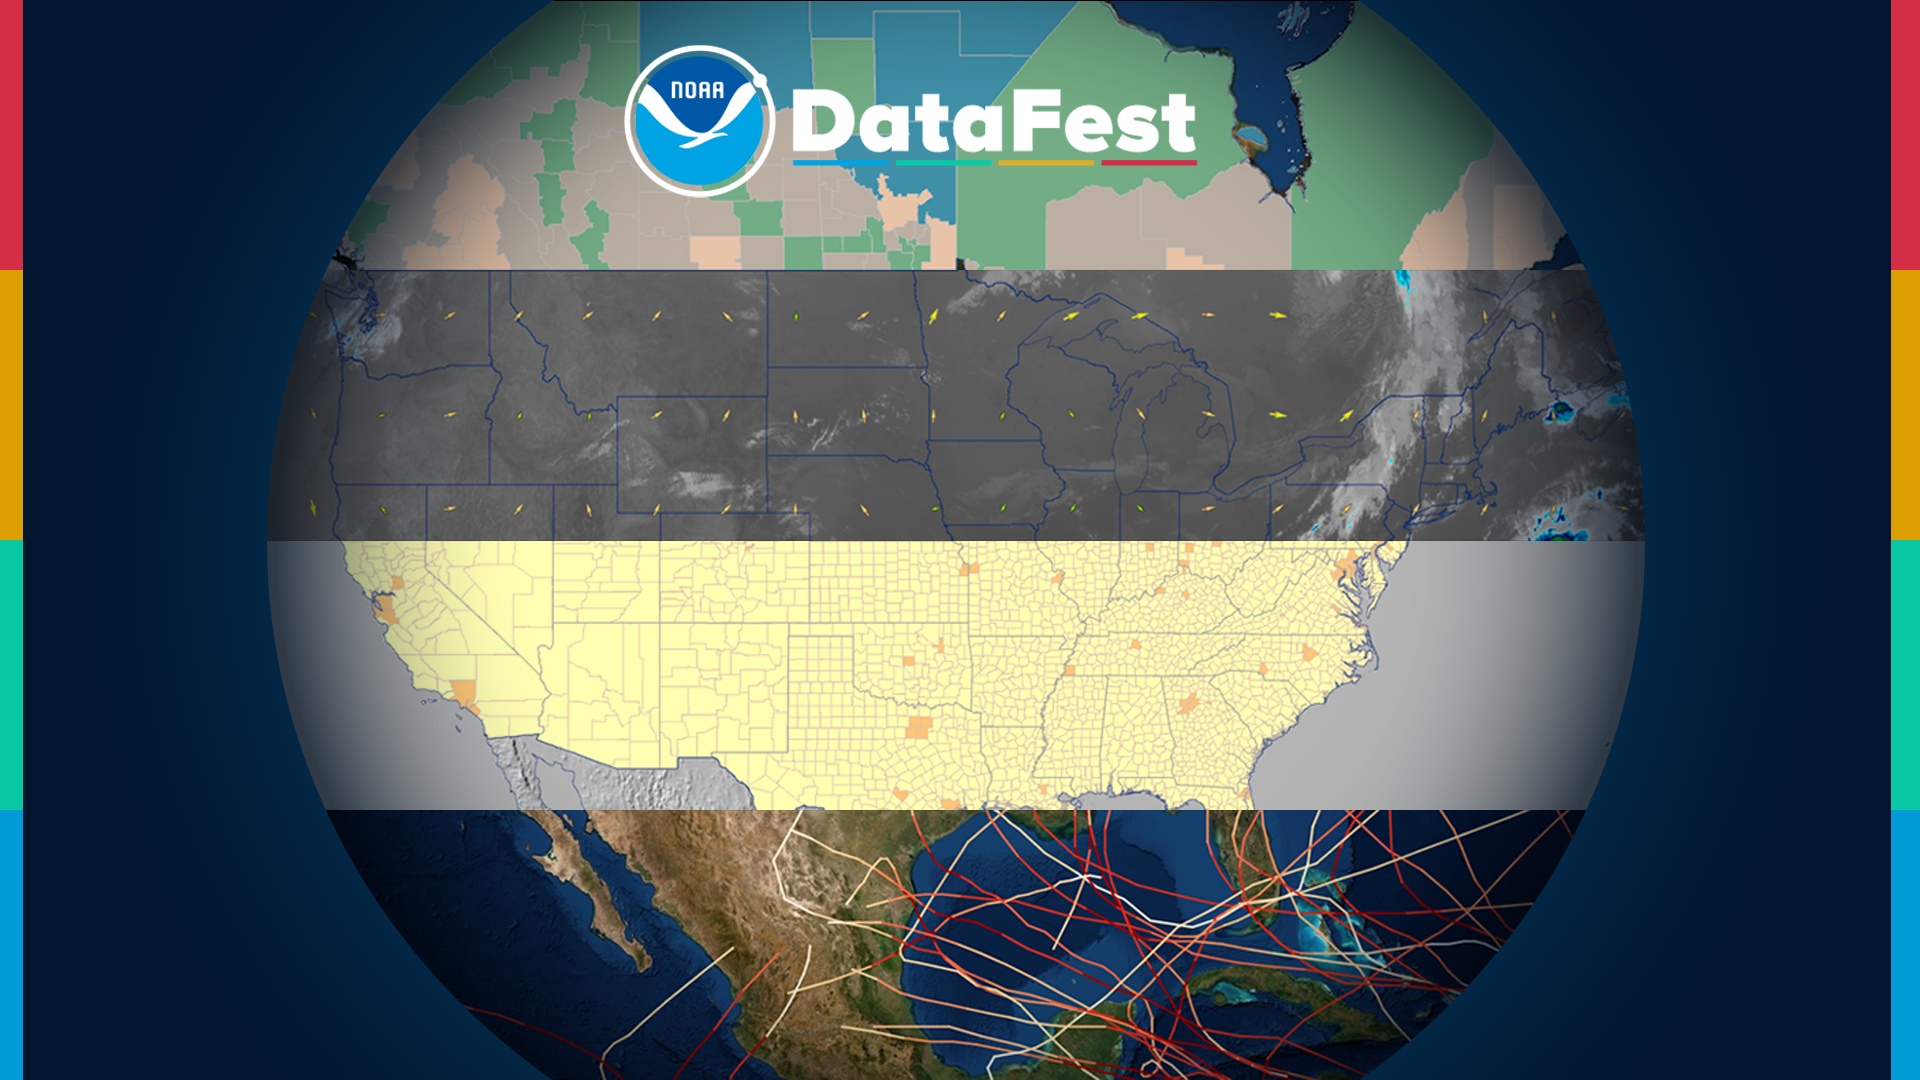 NOAA DataFest Coming this September